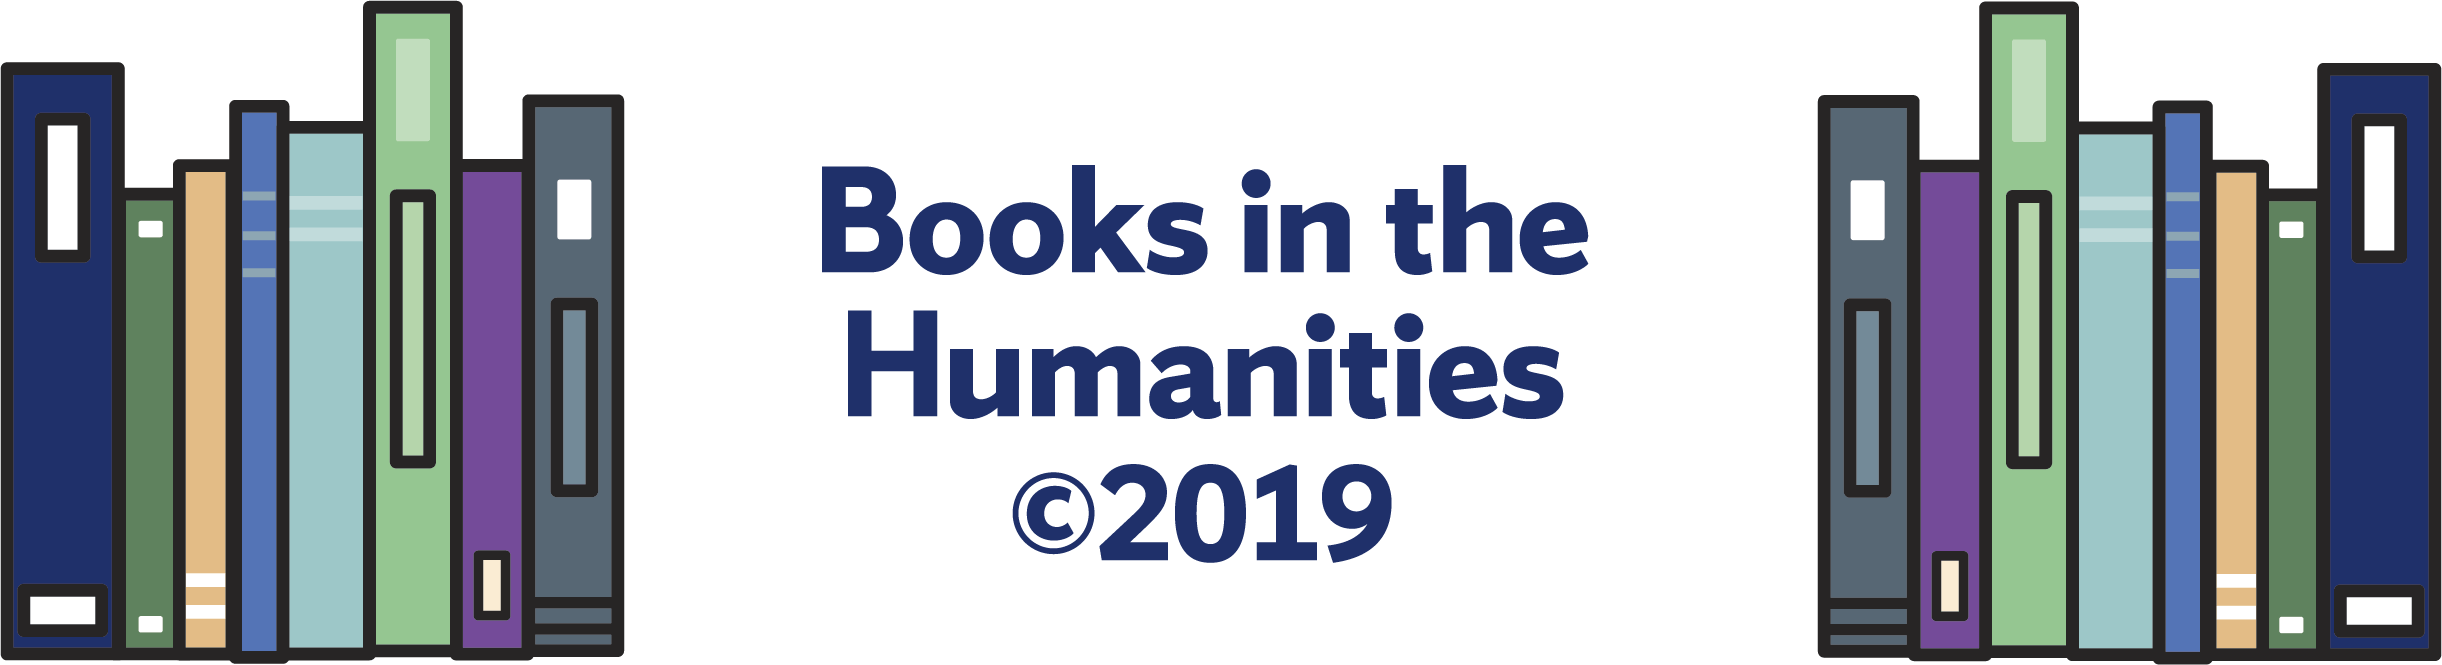 Books in The Humanities Header